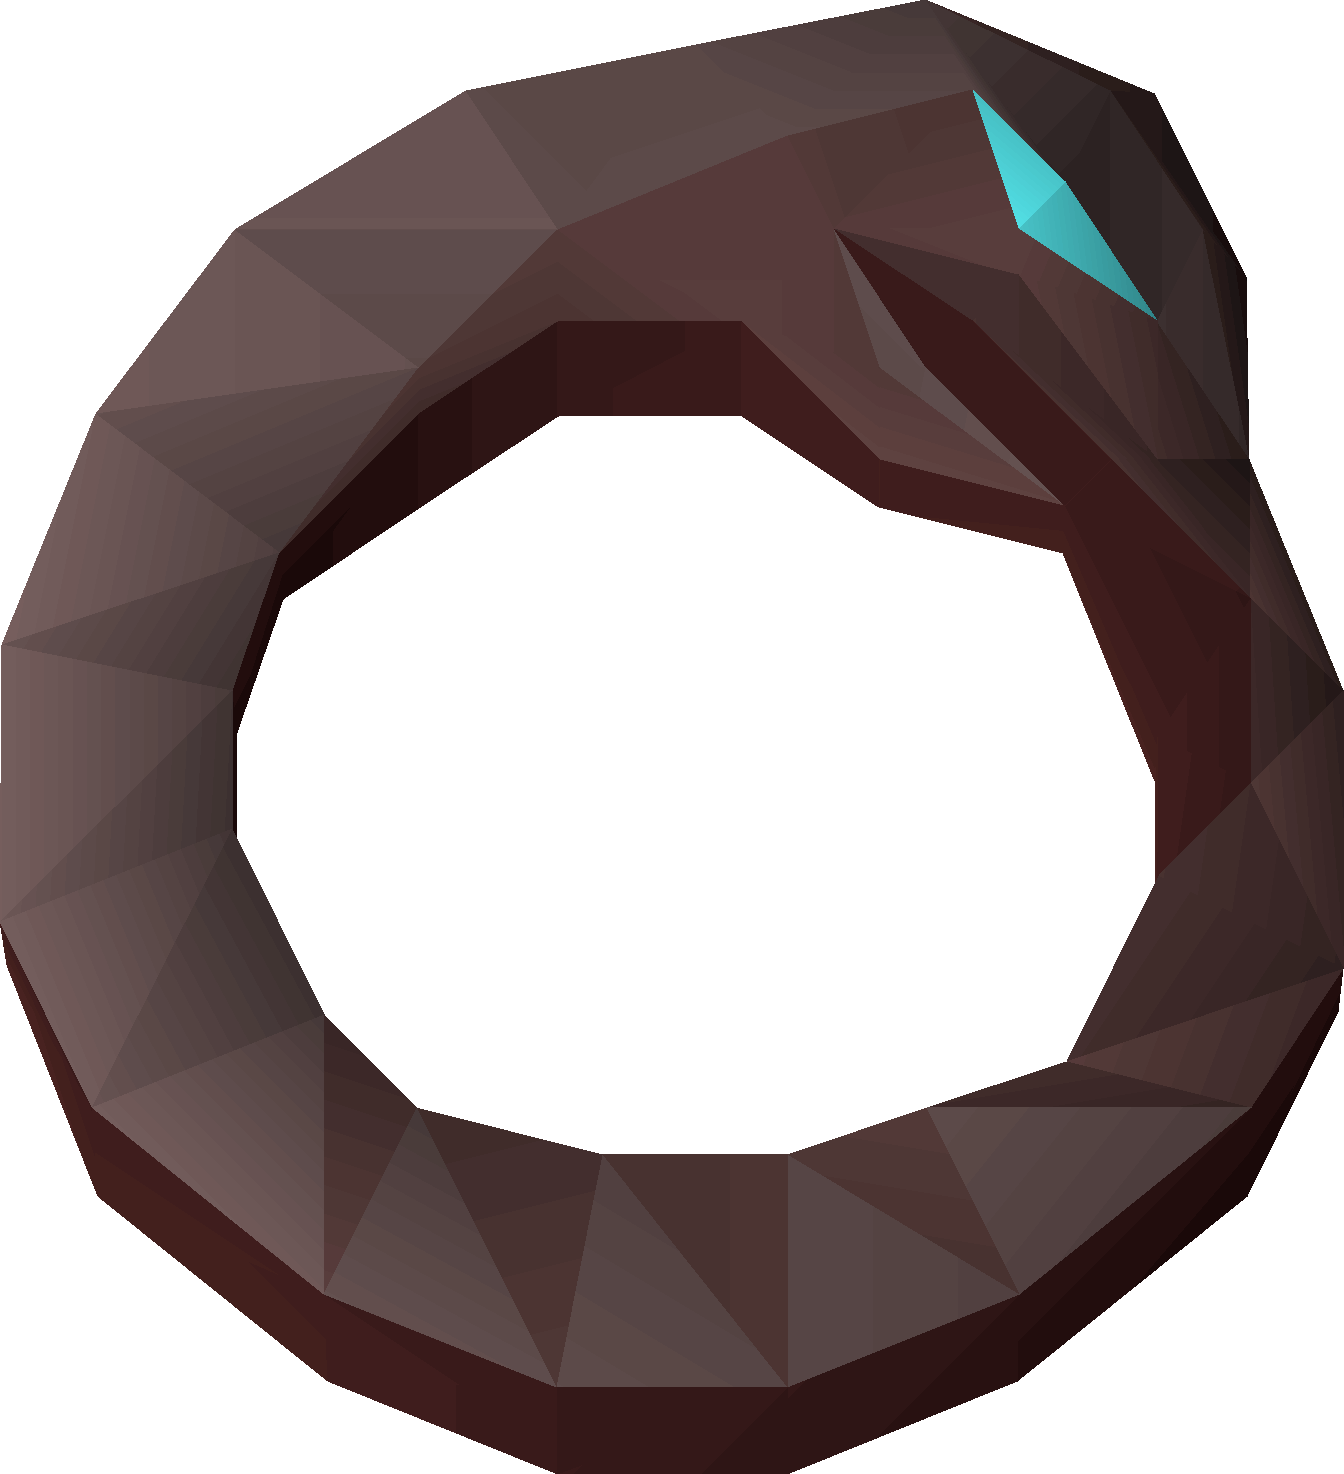 Brimstone ring - OSRS Wiki